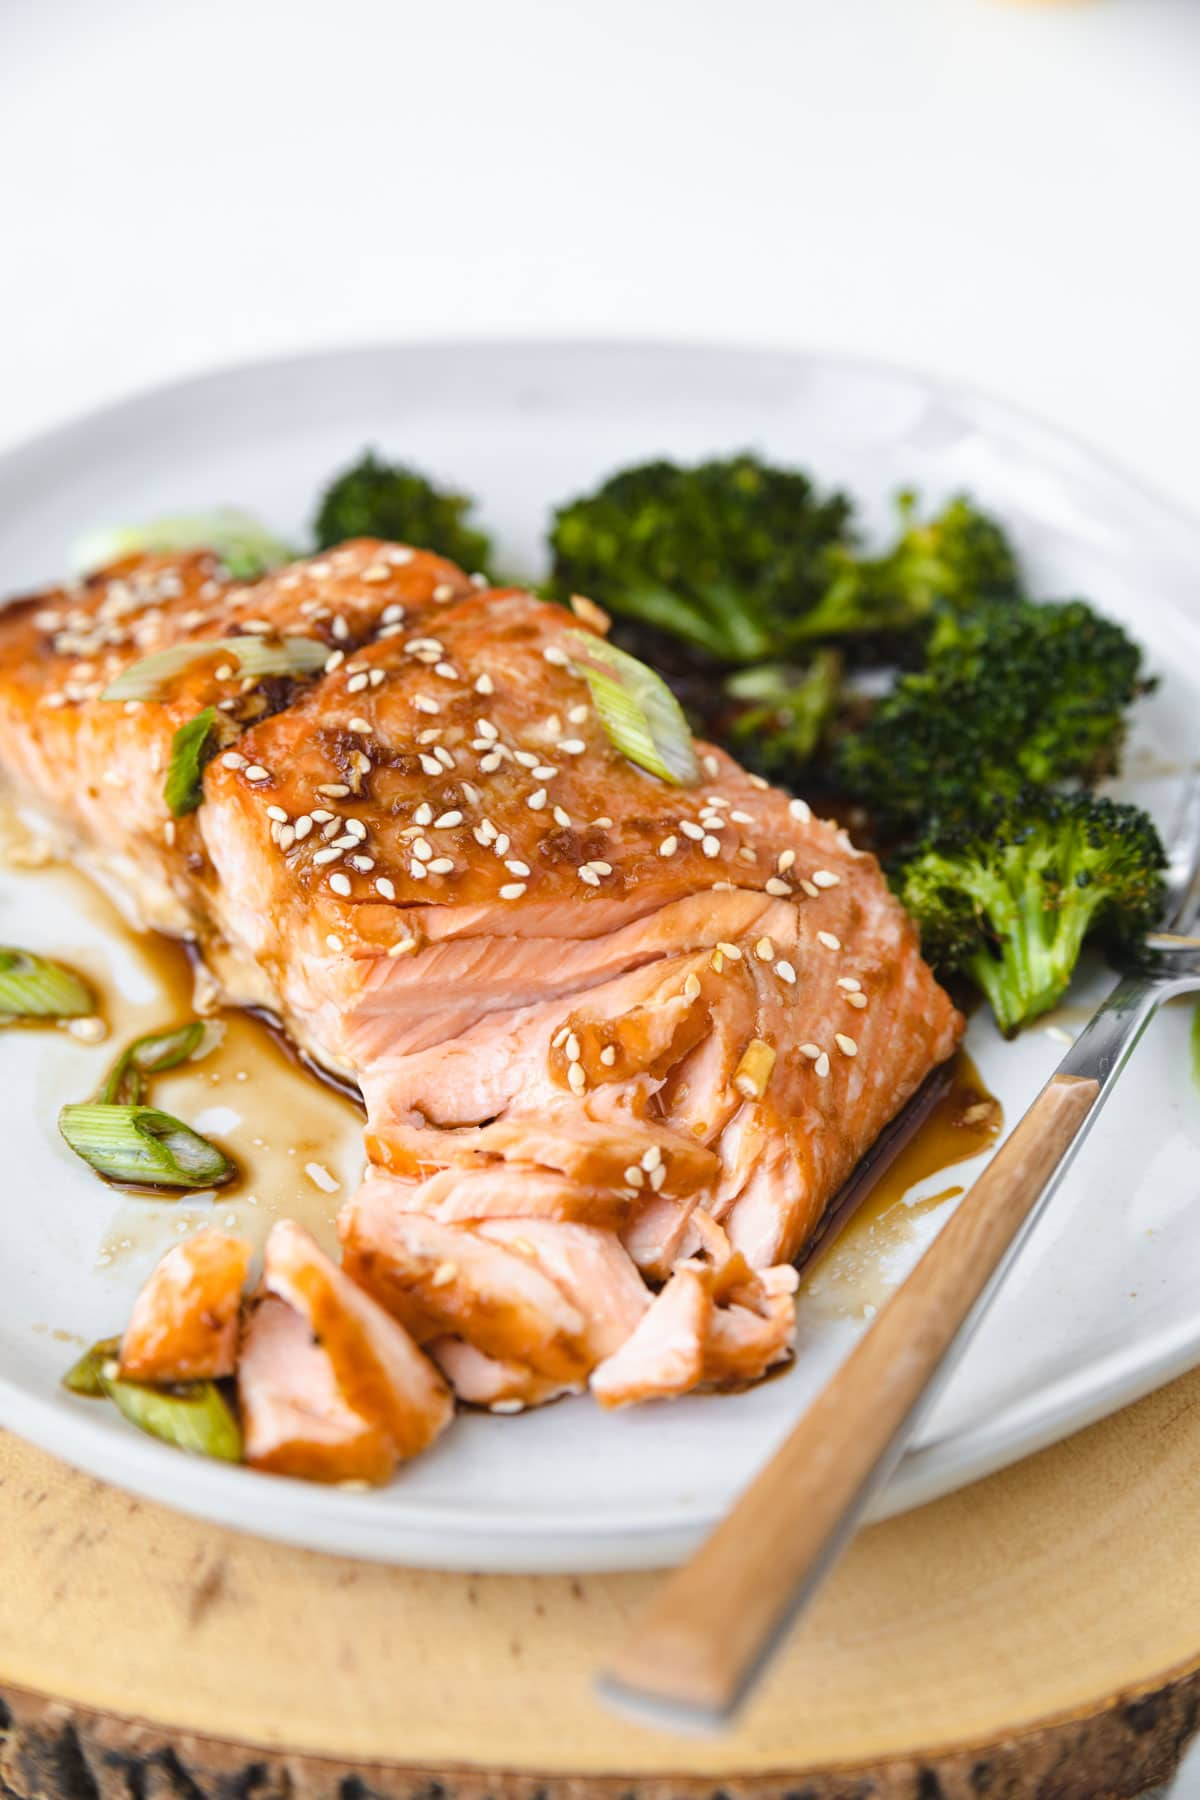 salmon topped with sesame seeds and flaked with a fork.On a plate with broccoli.